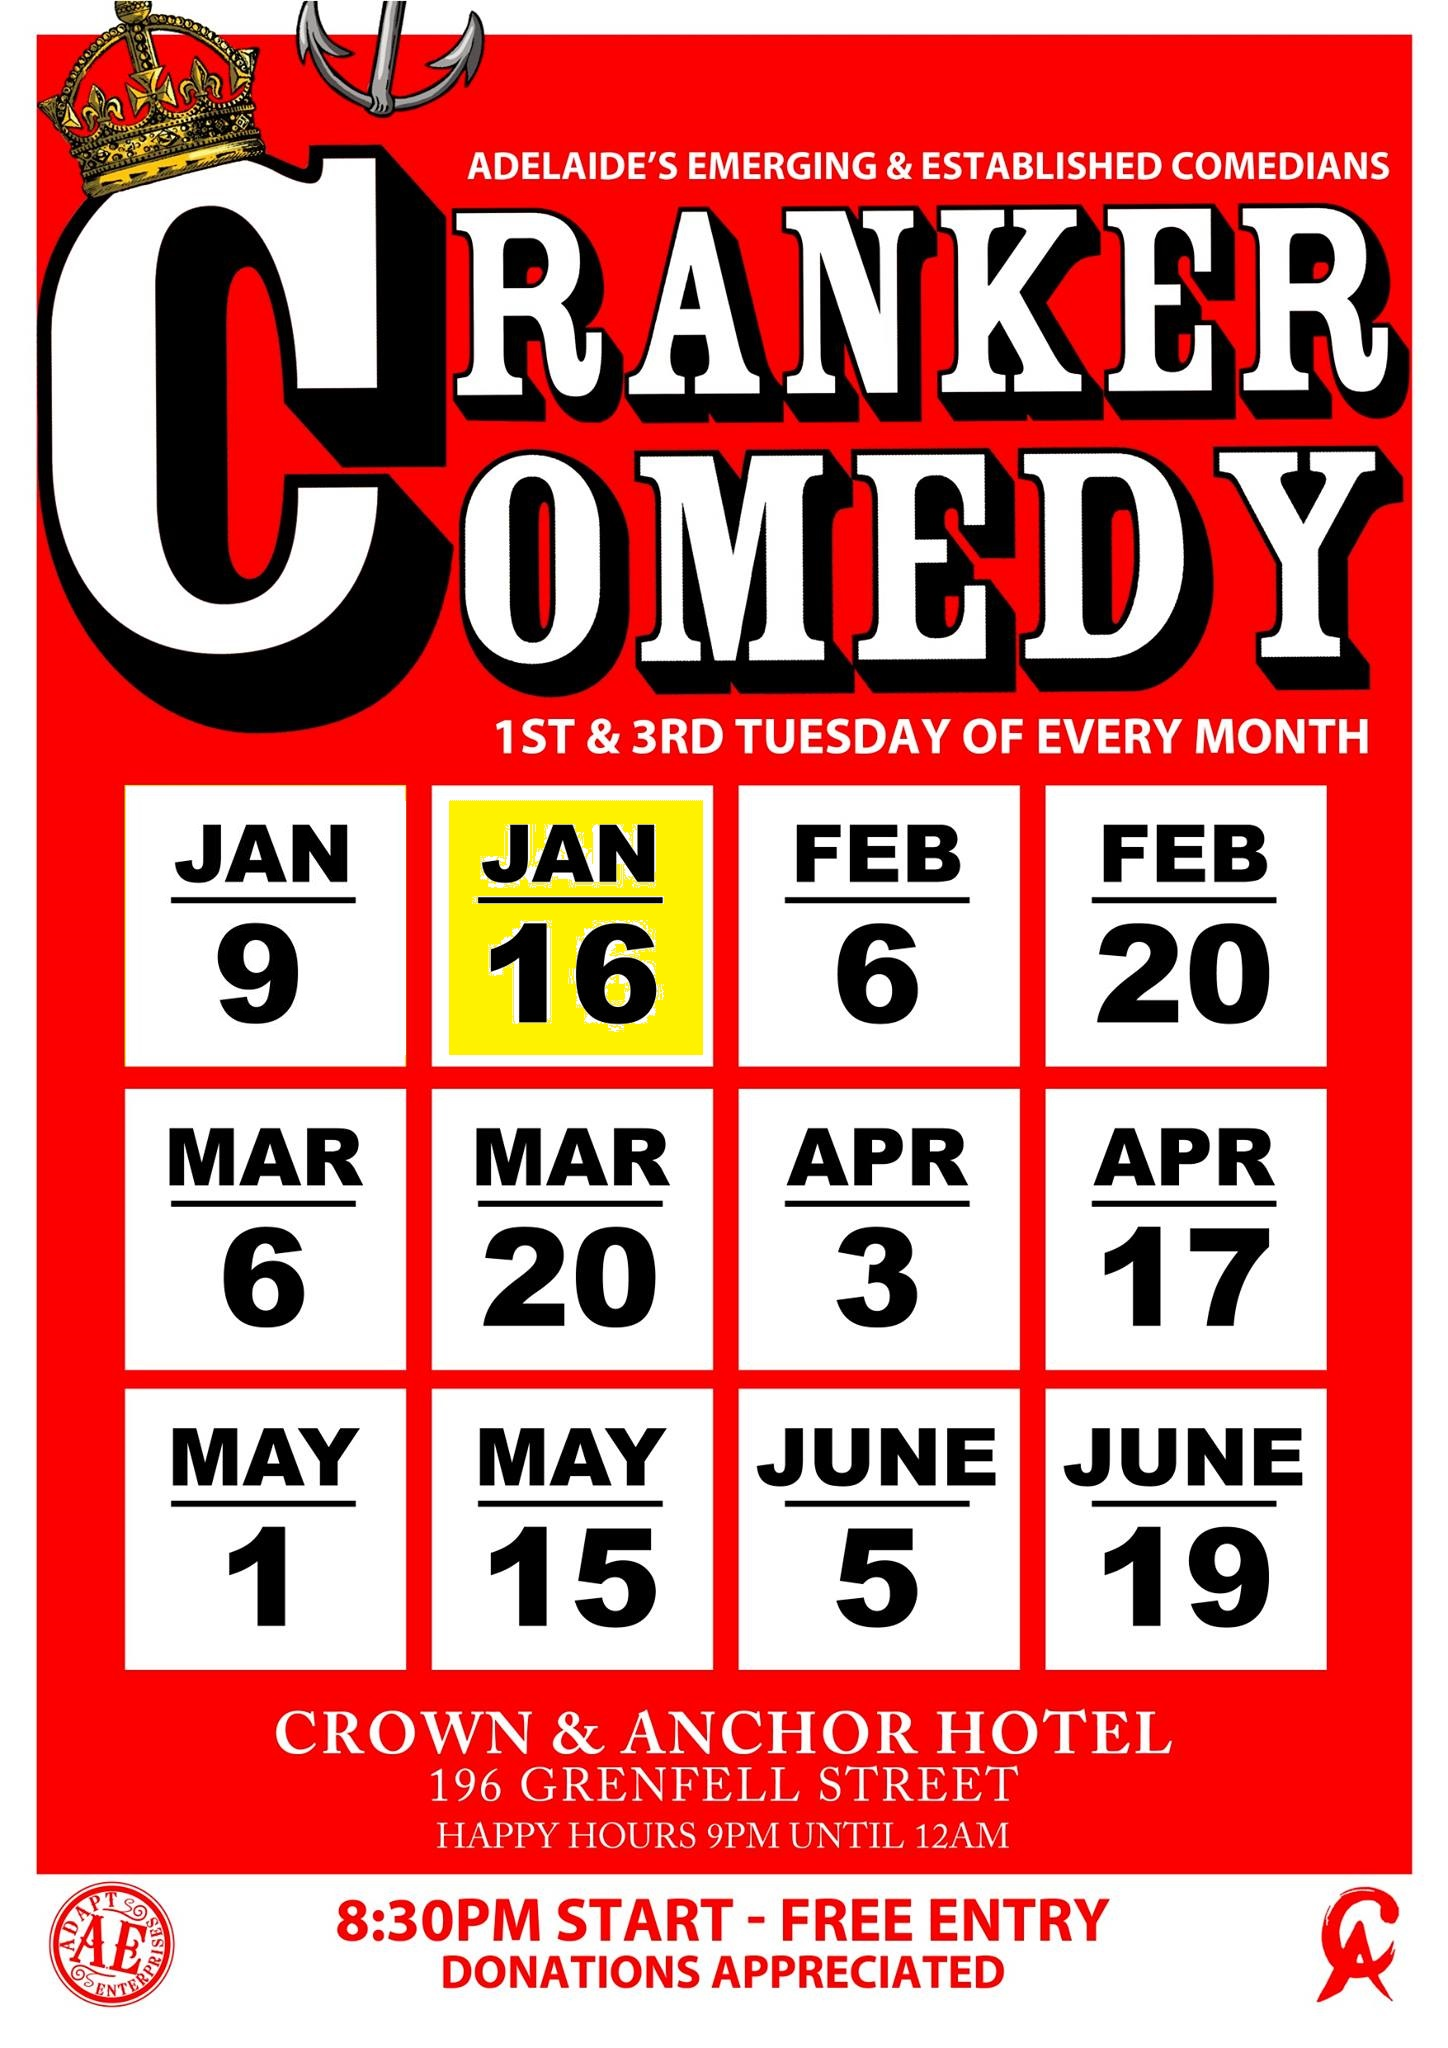 Pleased to be trying out some new material at Cranker Comedy on Tuesday the 16th of January 2018...